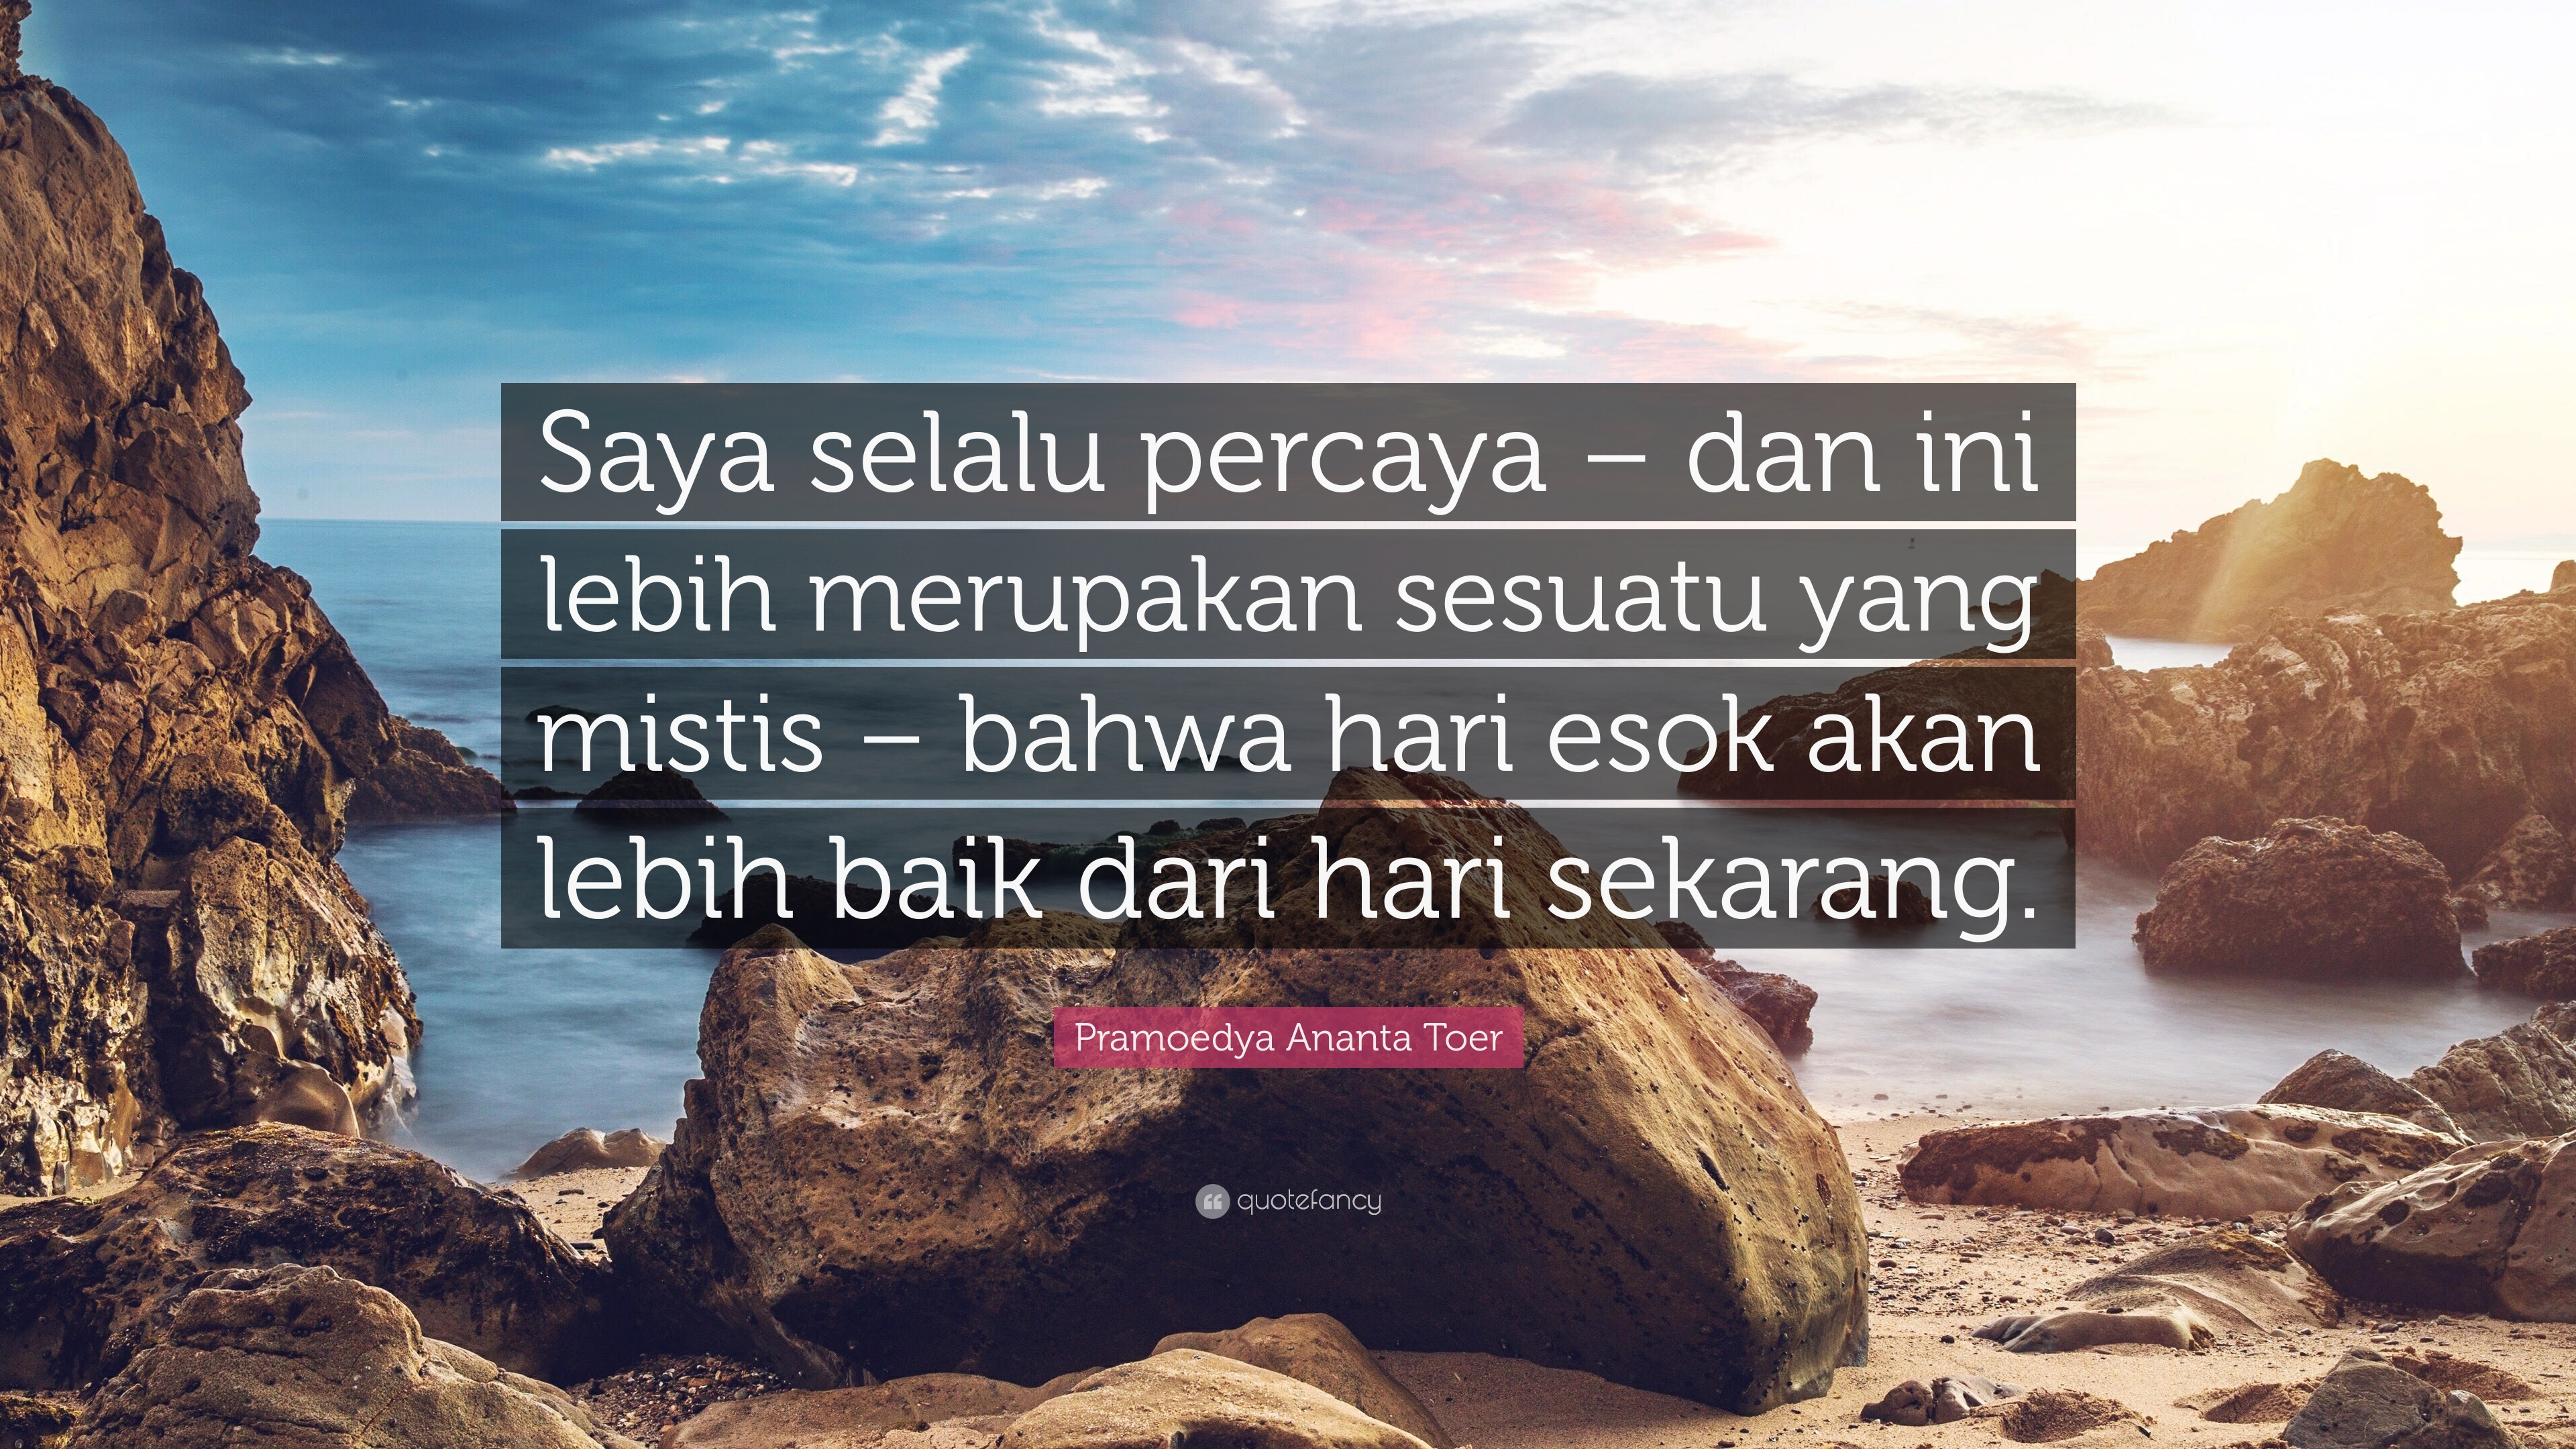 Pramoedya ananta toer quotes wallpapers quotefancy